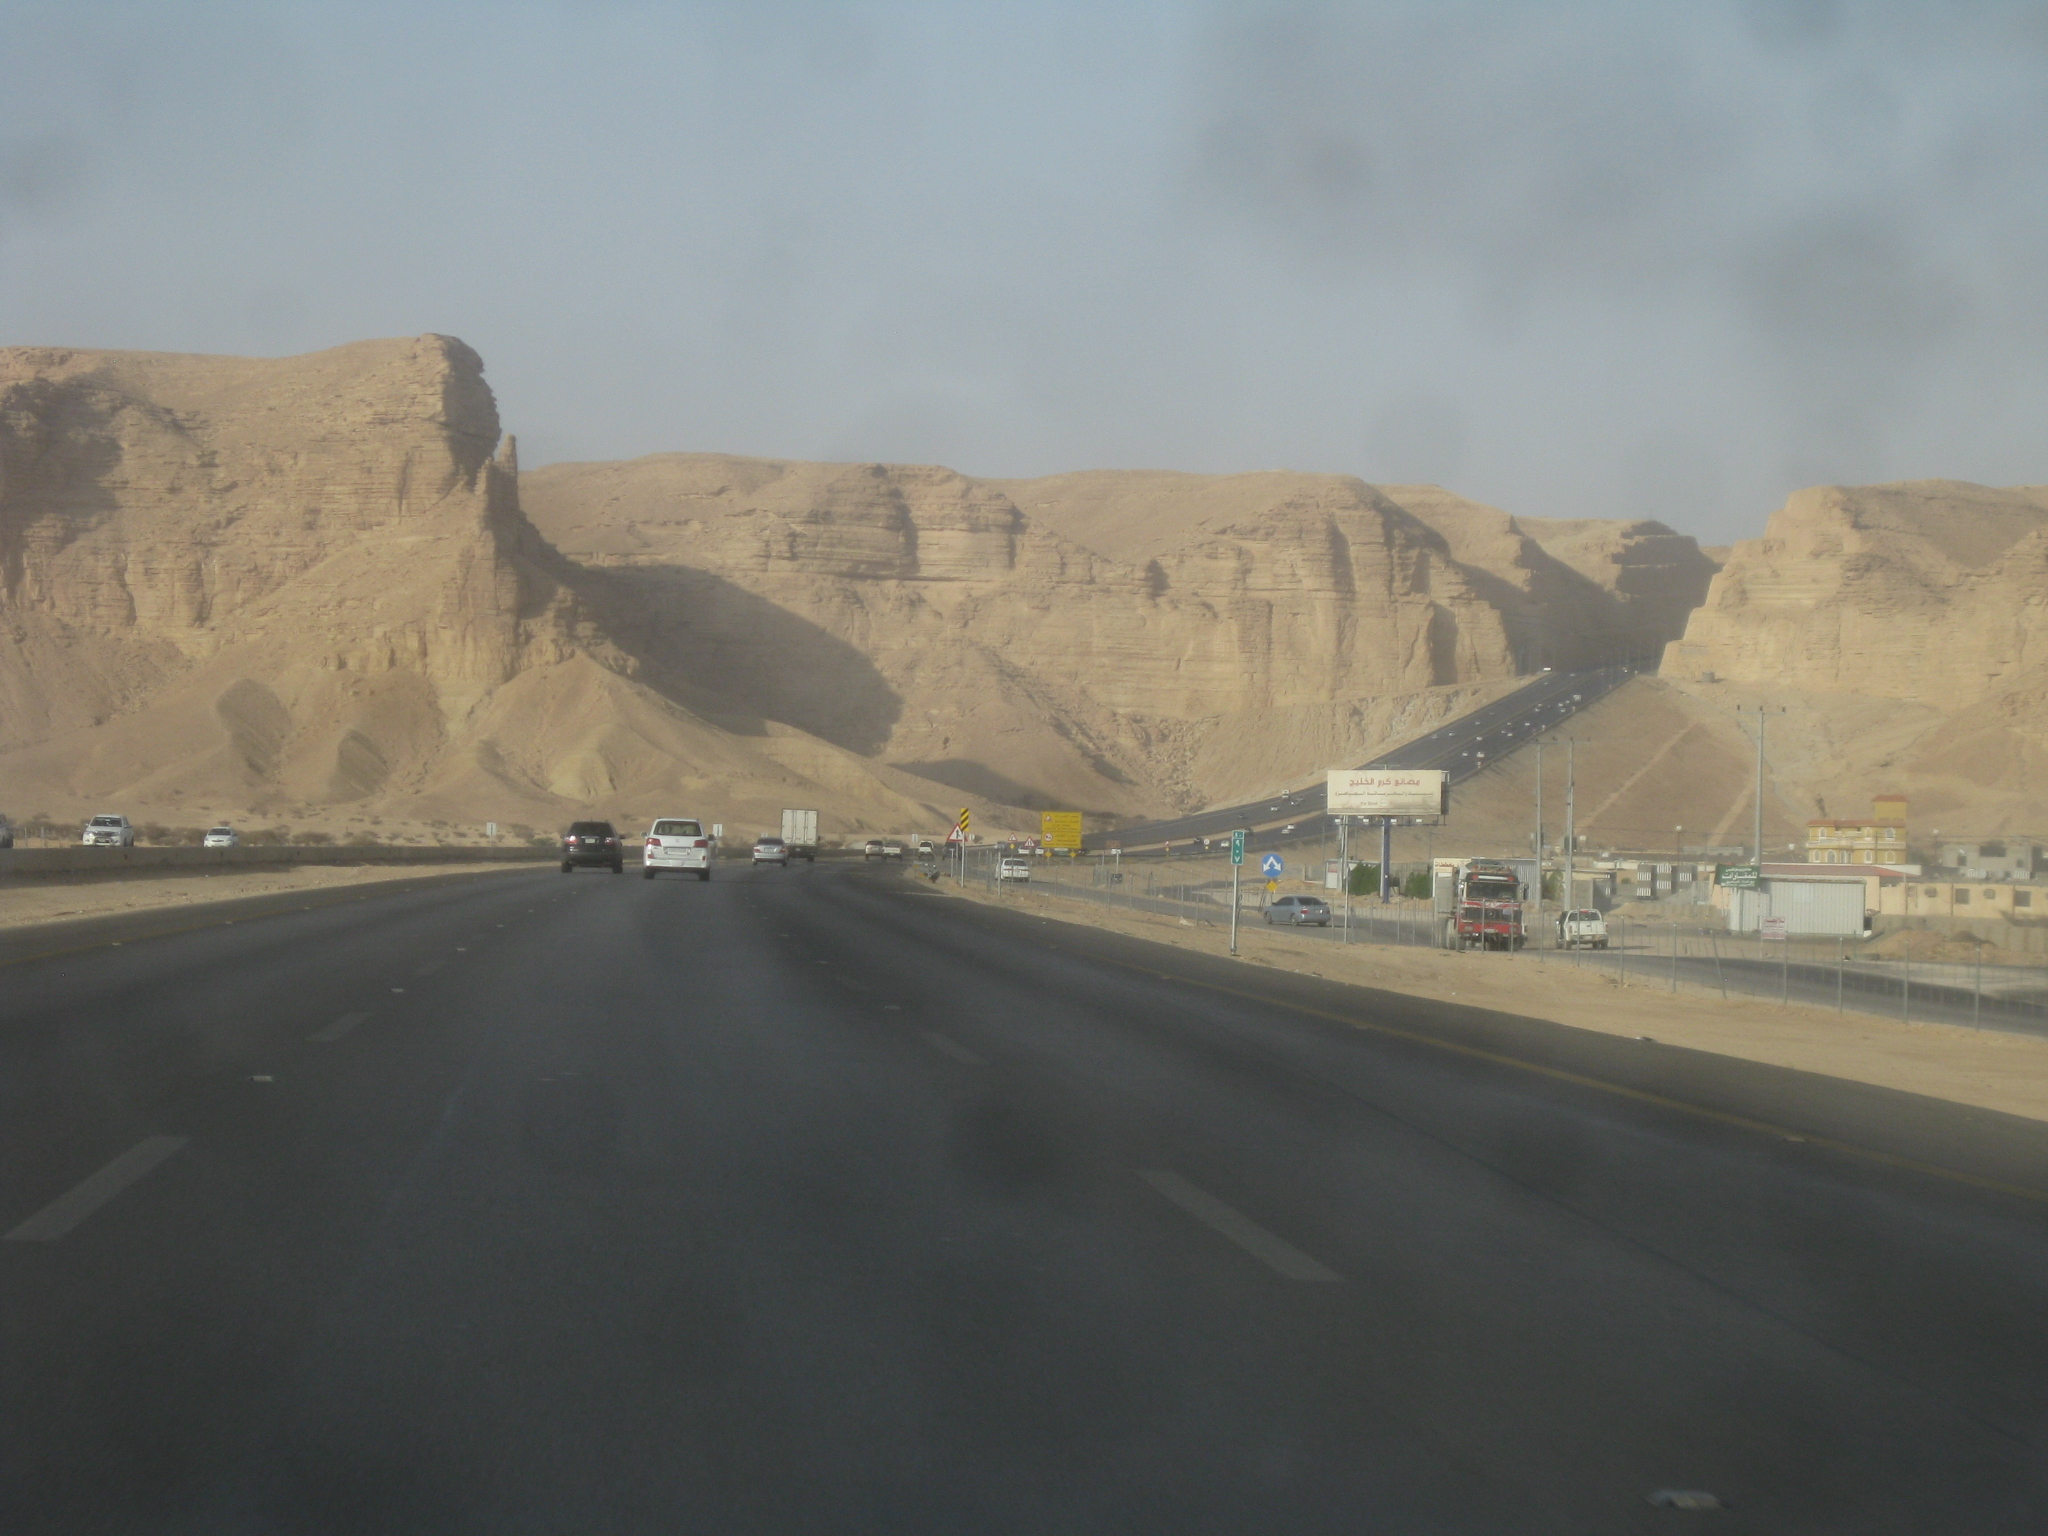 This is the main highway leading from the west up and into capital city Riyadh. A breathtaking view.